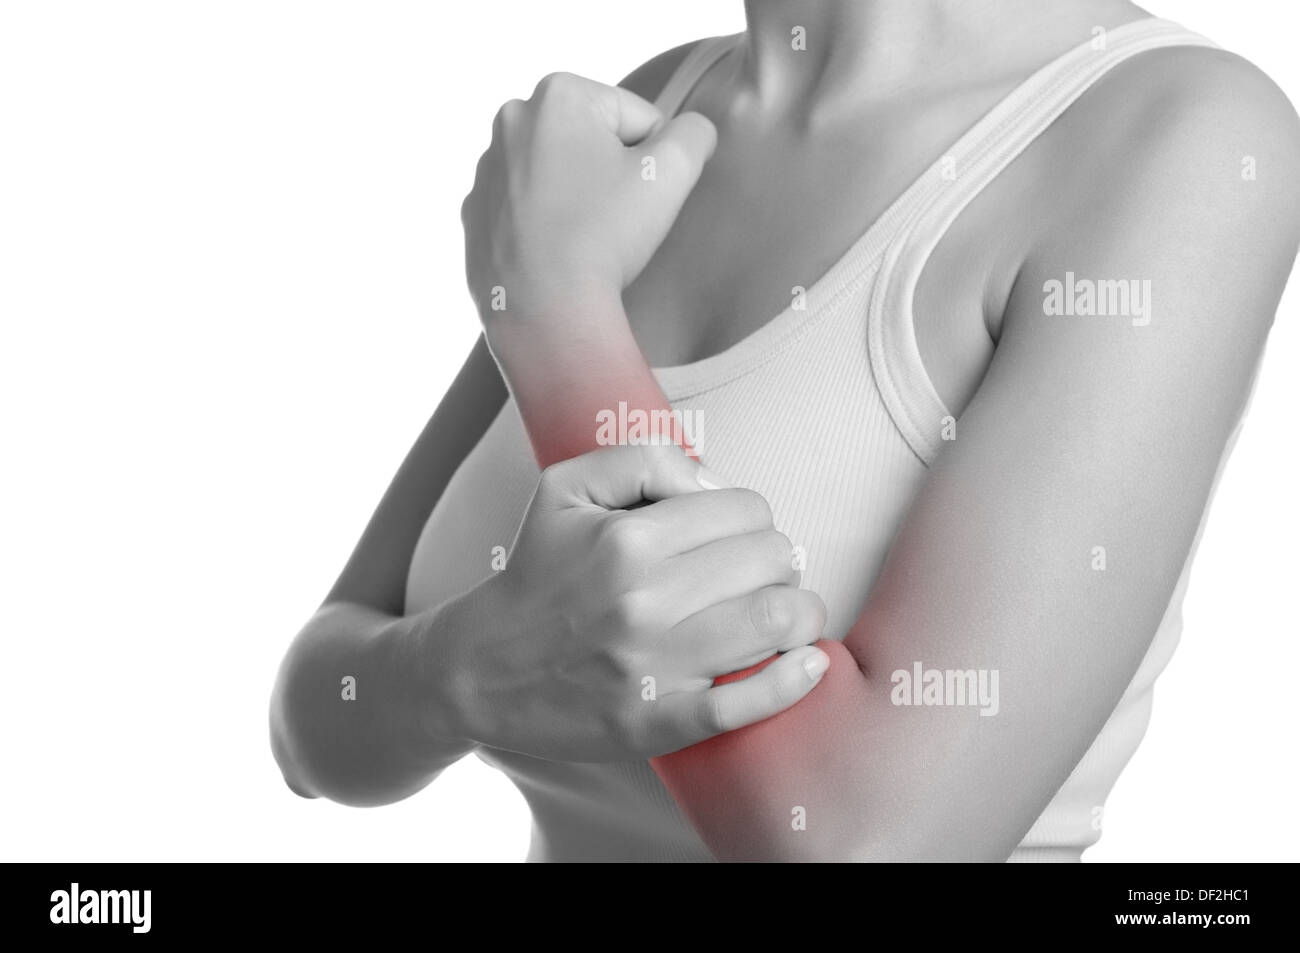 Female with pain in her forearm. Black and White with a red spot around the painful area. Isolated. - Stock Image